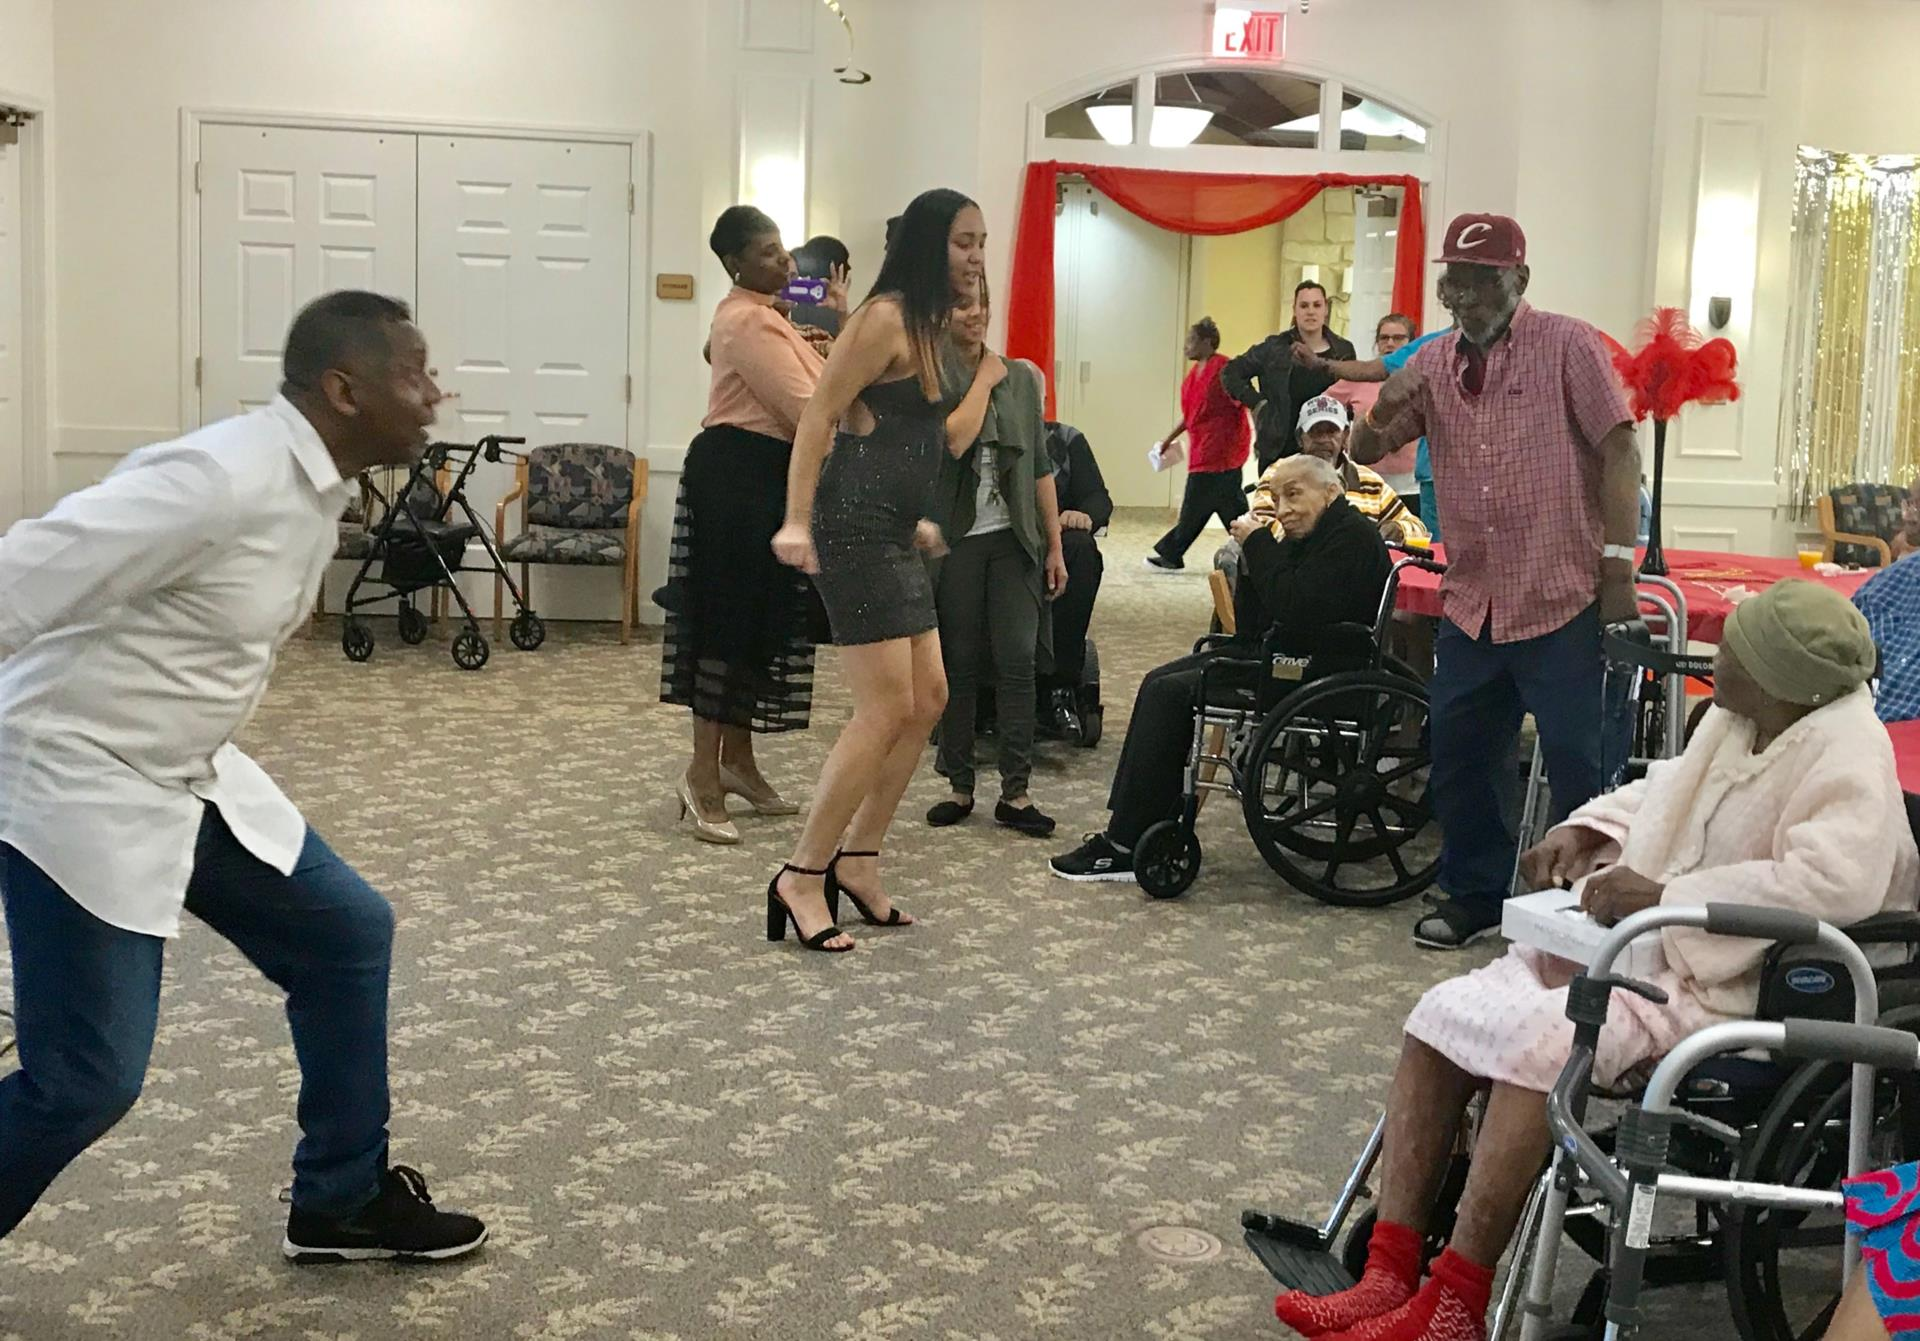 Teens dancing with older adults